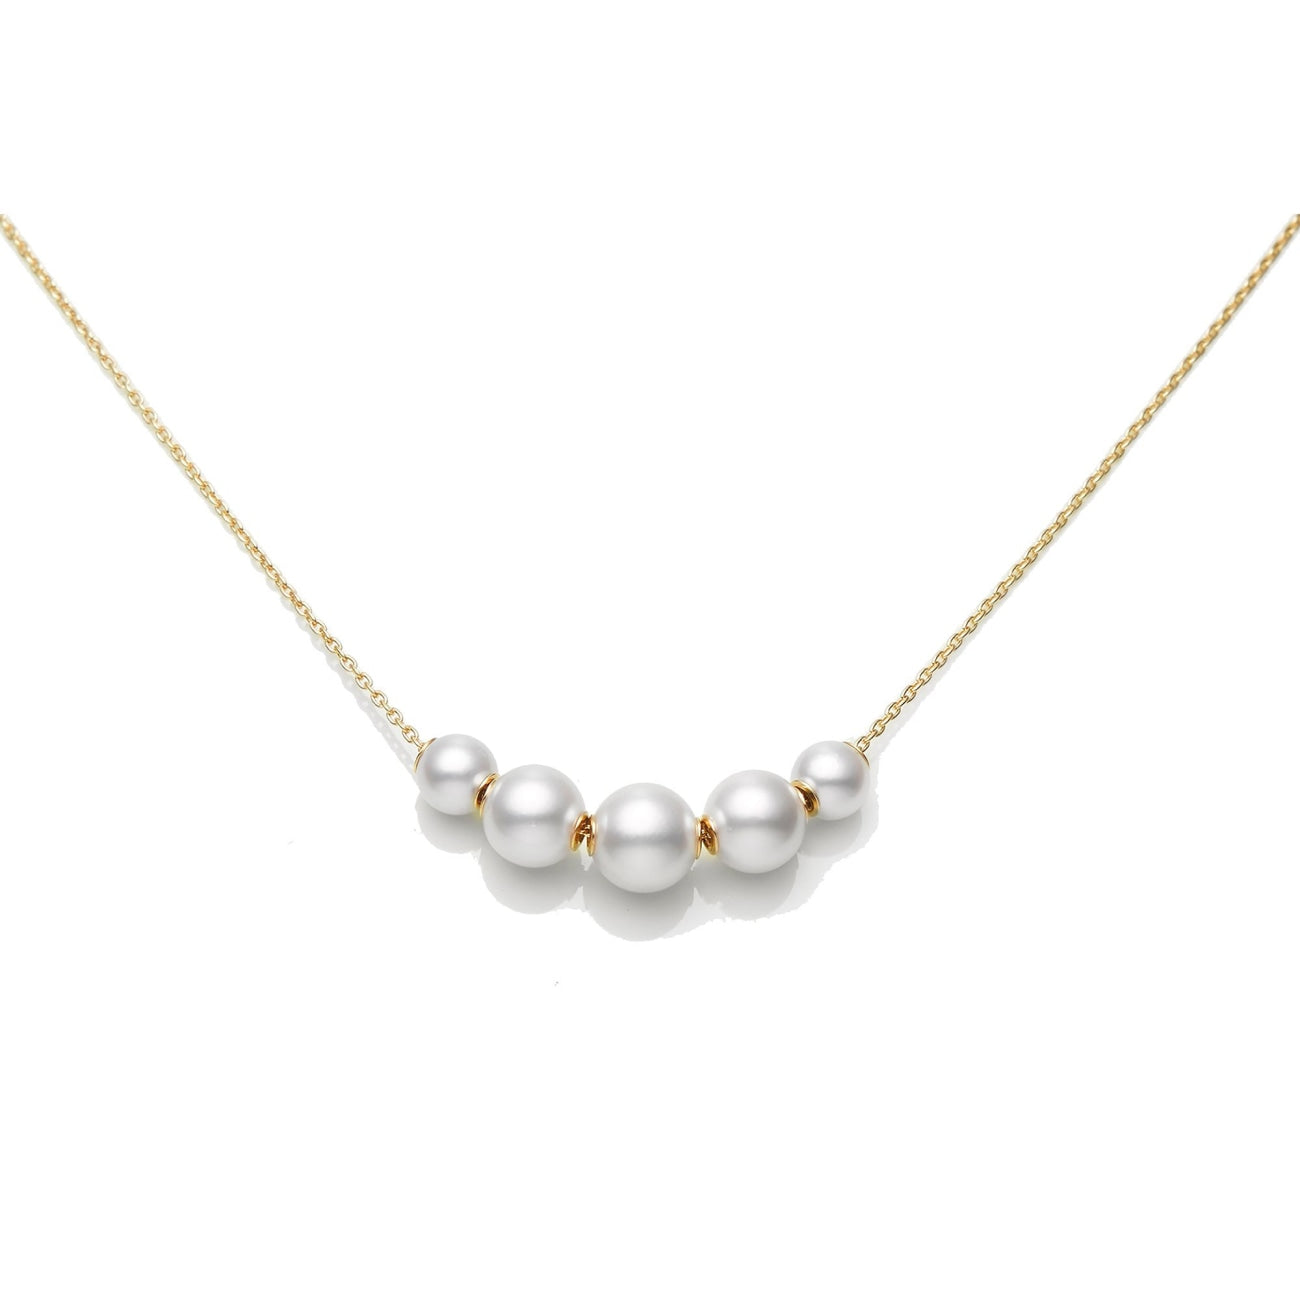 Mikimoto Jewelry - 18K Yellow Gold Cultured Pearl Pendant with 5 Cultured Pearls | Manfredi Jewels